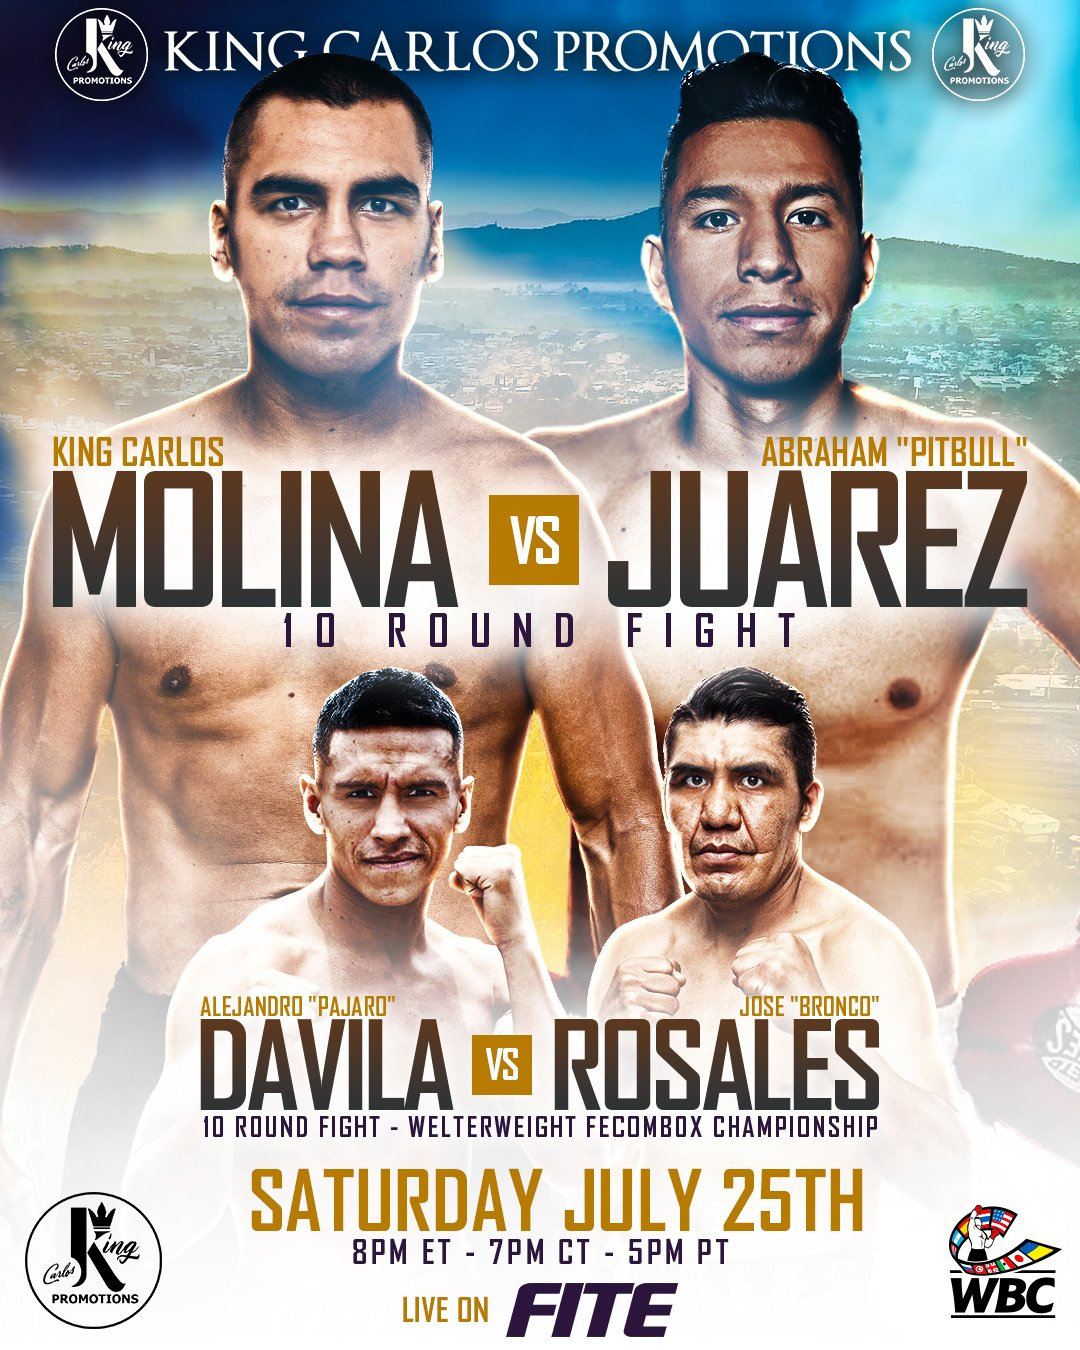 Abraham Juarez, Carlos Molina - King Carlos Promotions is coming back with another electrifying boxing event July 25th in his home state of Michoacan, Mexico, The 5 fight card closed-door event will stream live on FITE TV (8 p.m. ET/ 4 p.m. PT).